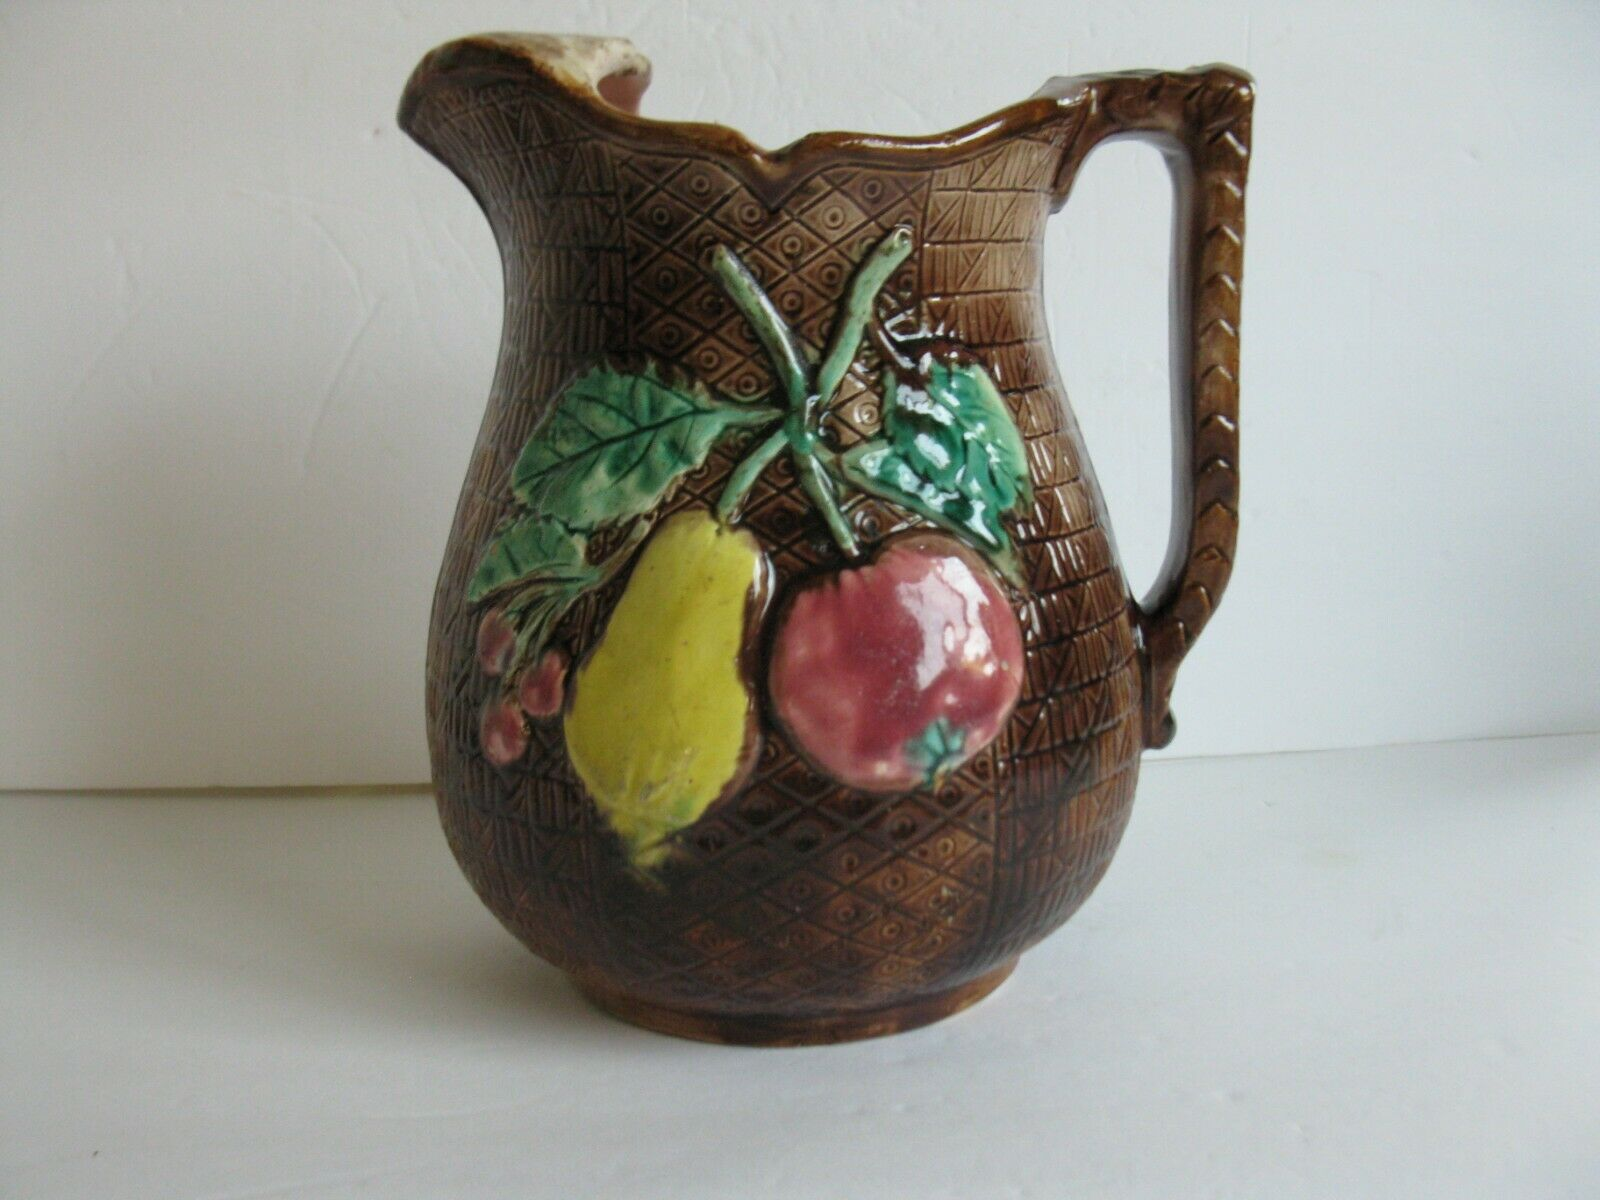 LARGE ANTIQUE TALL MAJOLICA WATER PITCHER WITH FRUIT AND GRAPES. 8 1/2 TALL - $75.00